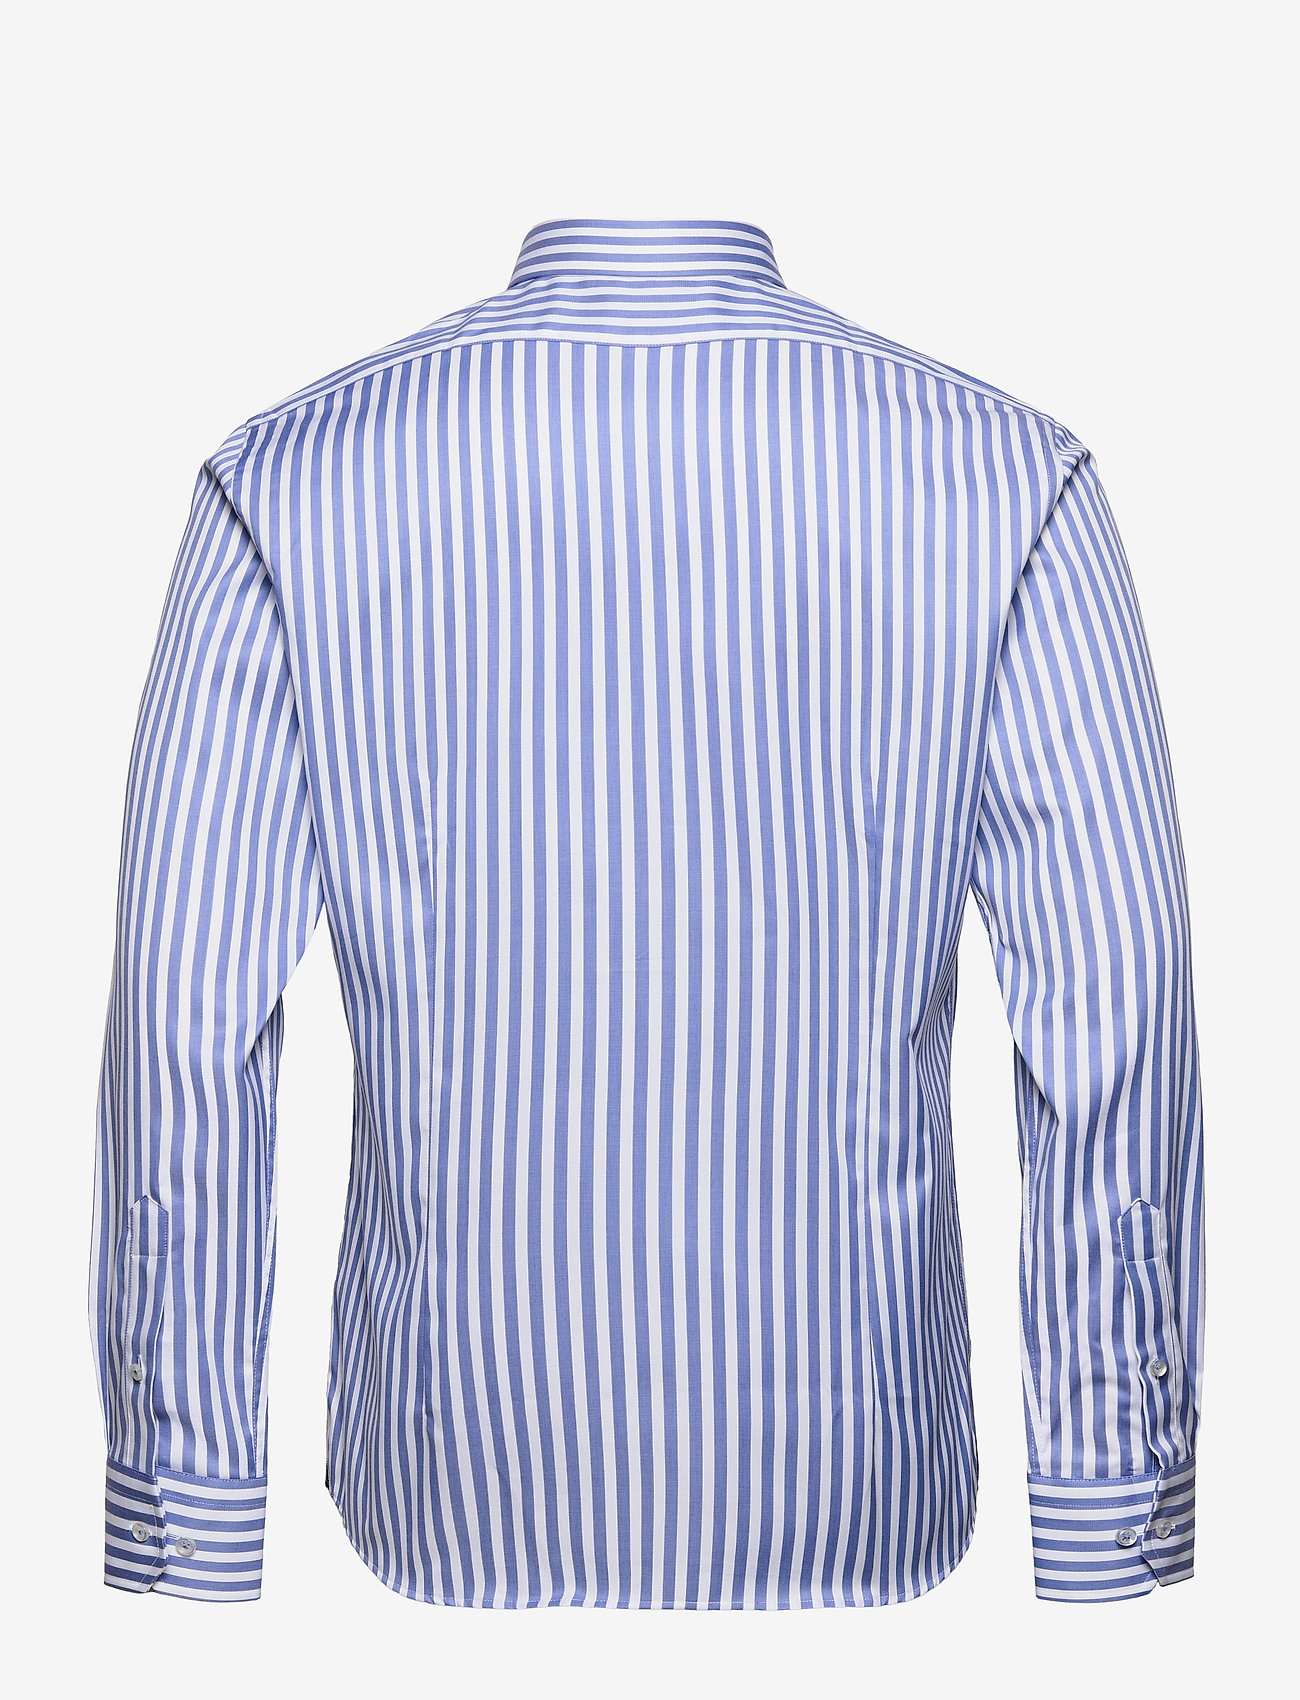 XO Shirtmaker by Sand Copenhagen - 8734 - Gordon SC - business skjortor - blue - 1